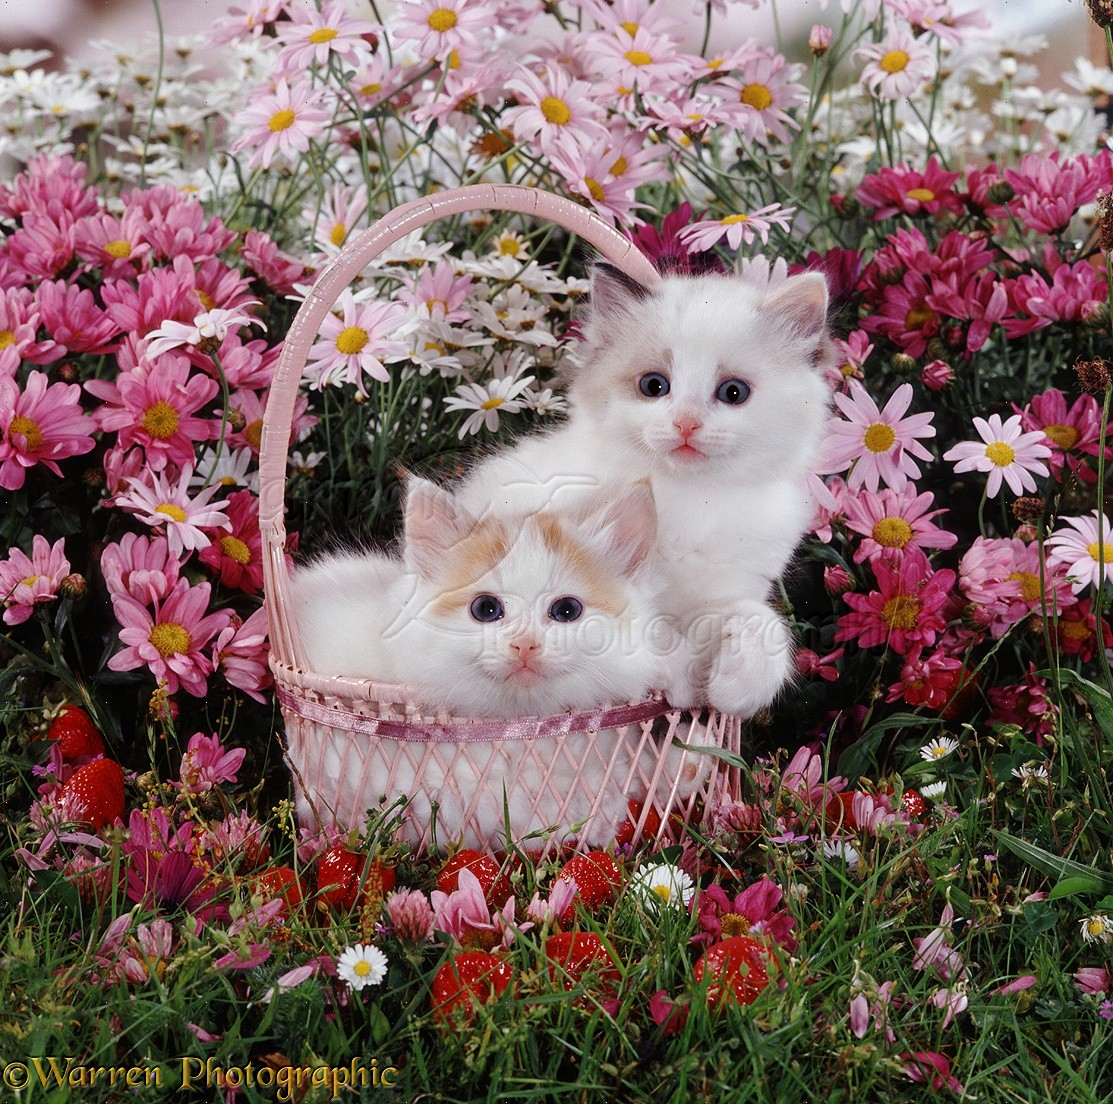 Kittens in a basket among flowers photo WP08178